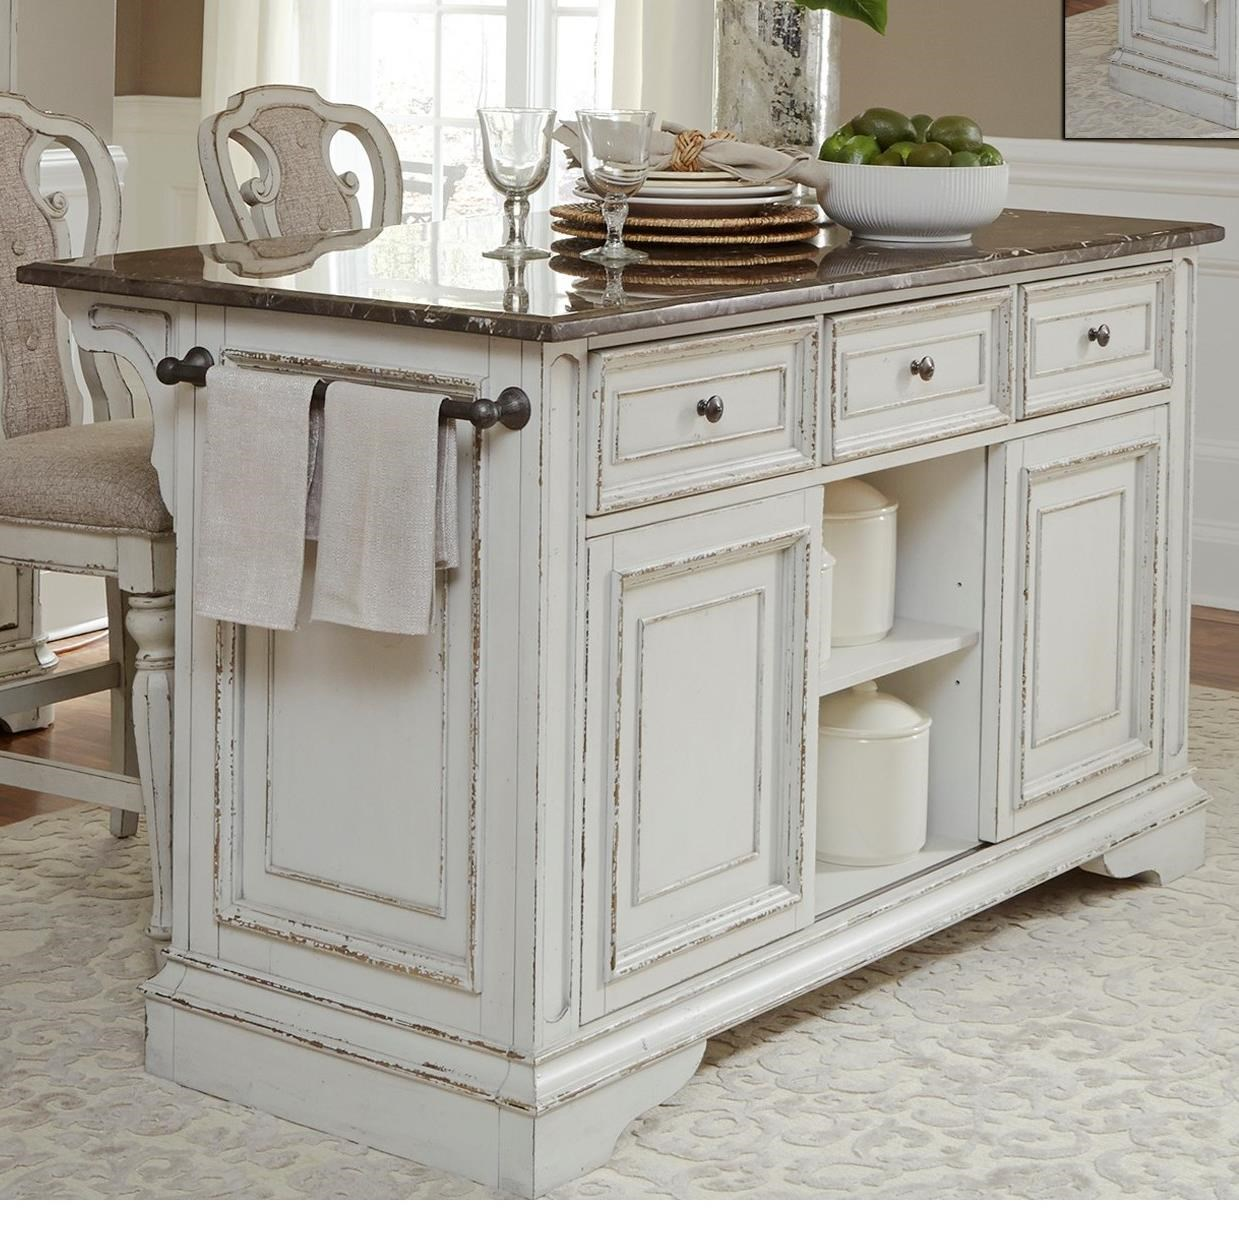 Kitchen Island Table Granite: Liberty Furniture Magnolia Manor Dining Kitchen Island With Granite Countertop